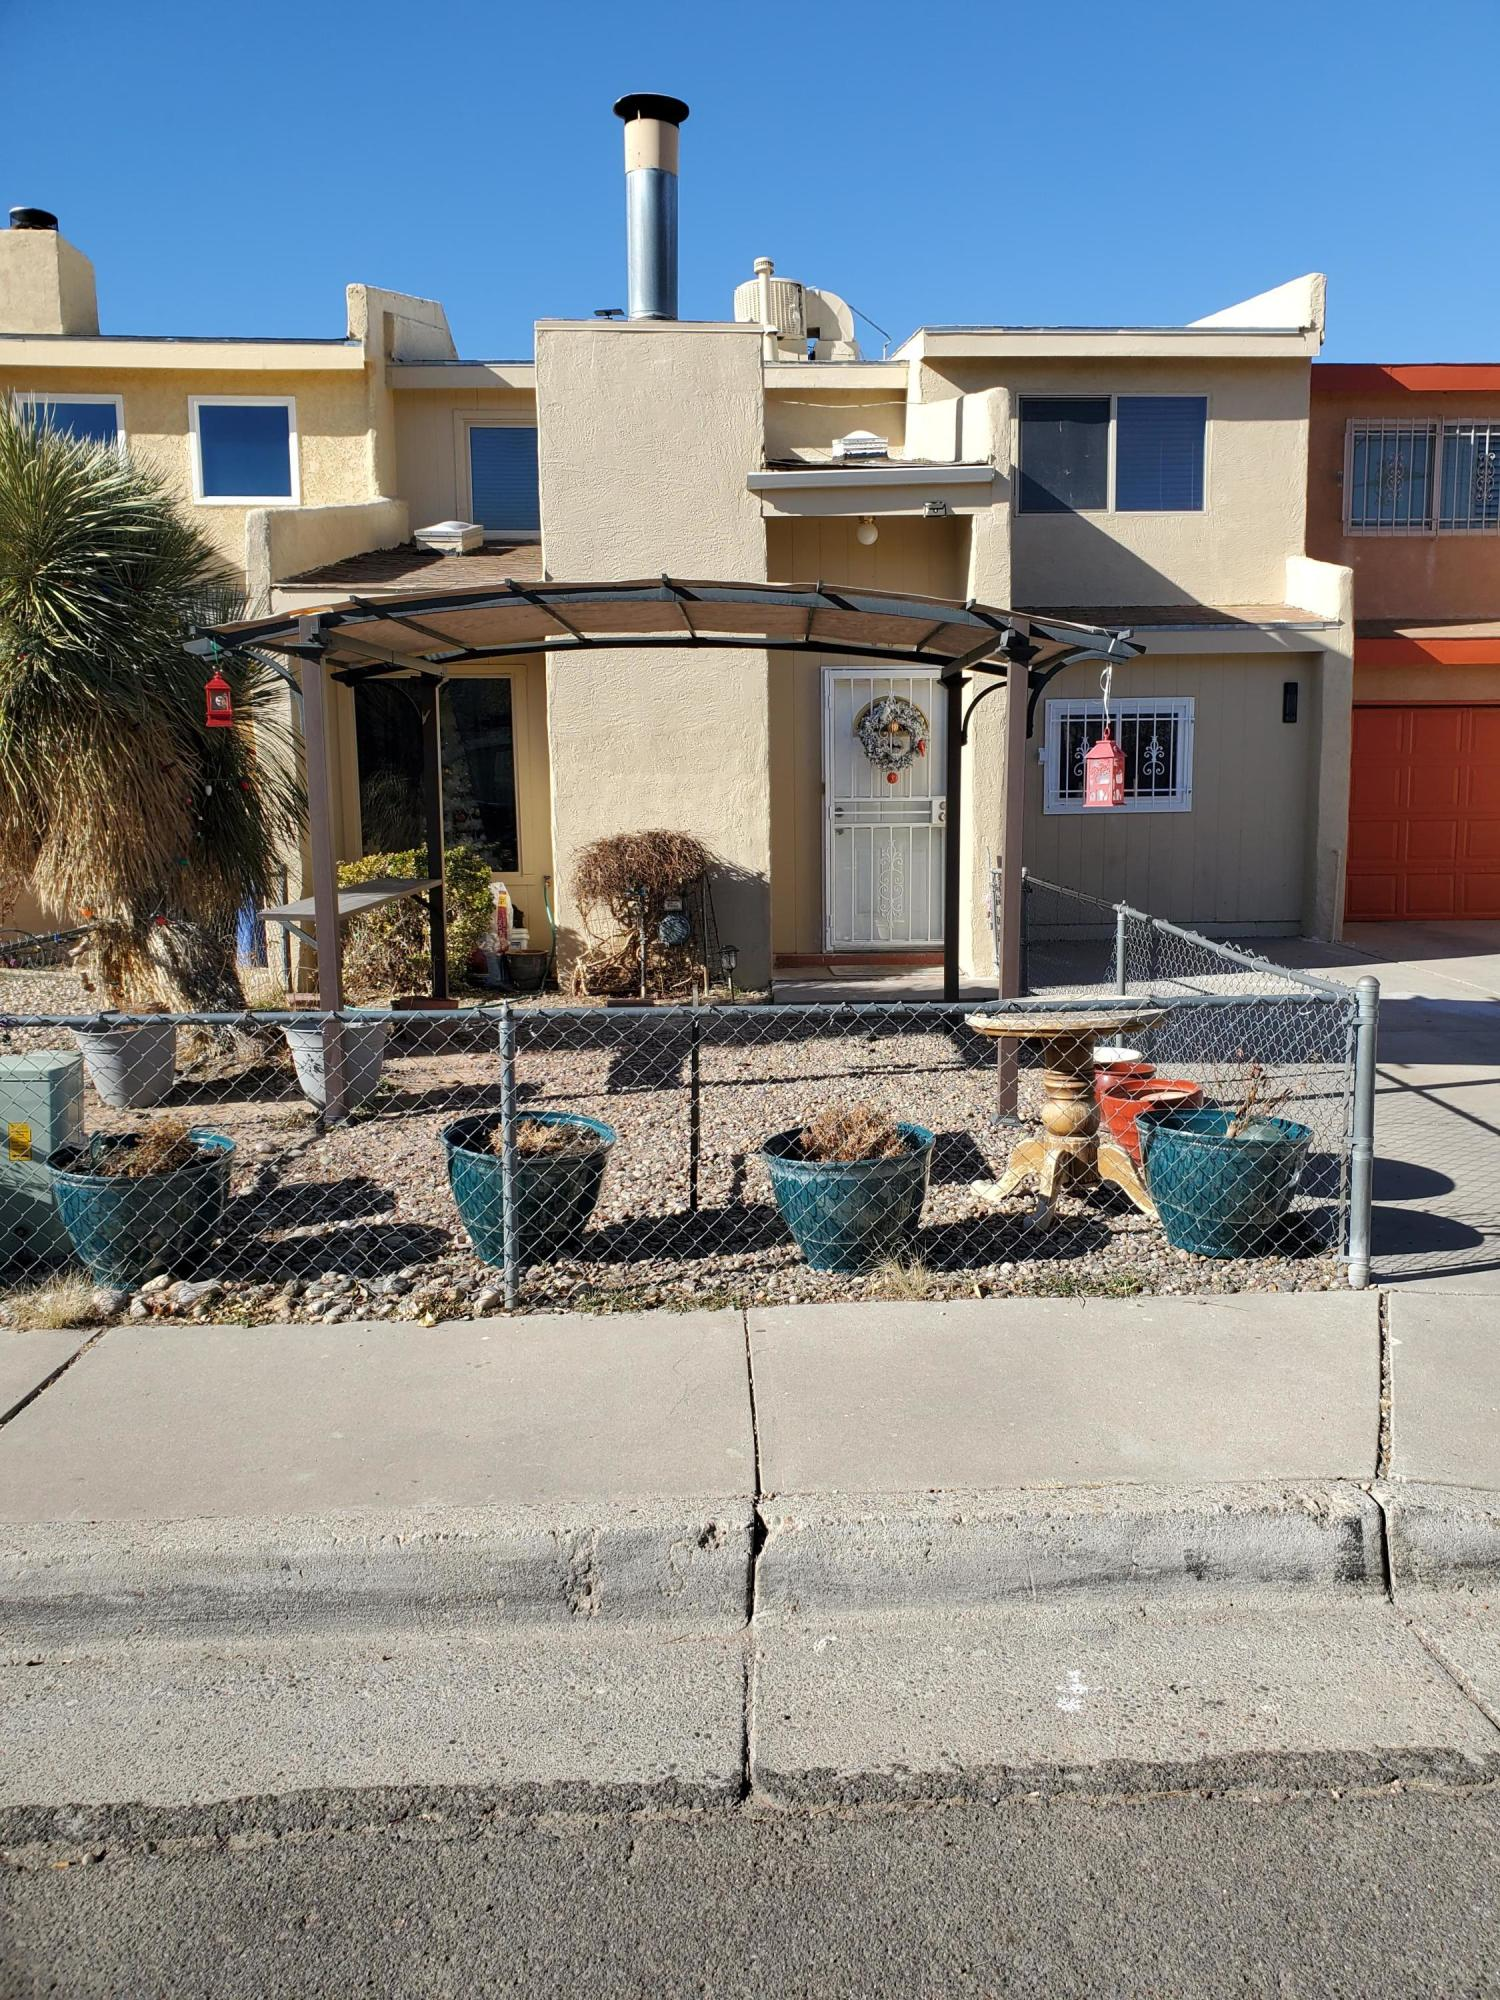 CUTE TOWNHOUSE  CONVENIENT TO KAFB, SANDIA, I-40, SHOPPING MALLS, HOSPITALS, ETC. GREAT STARTER HOME.  MASTERBEDROOM DOWNSTAIRS.  QUIET NEIGHBORHOOD. CALL YOUR REALTOR TODAY TO SEE THIS NEW LISTING.